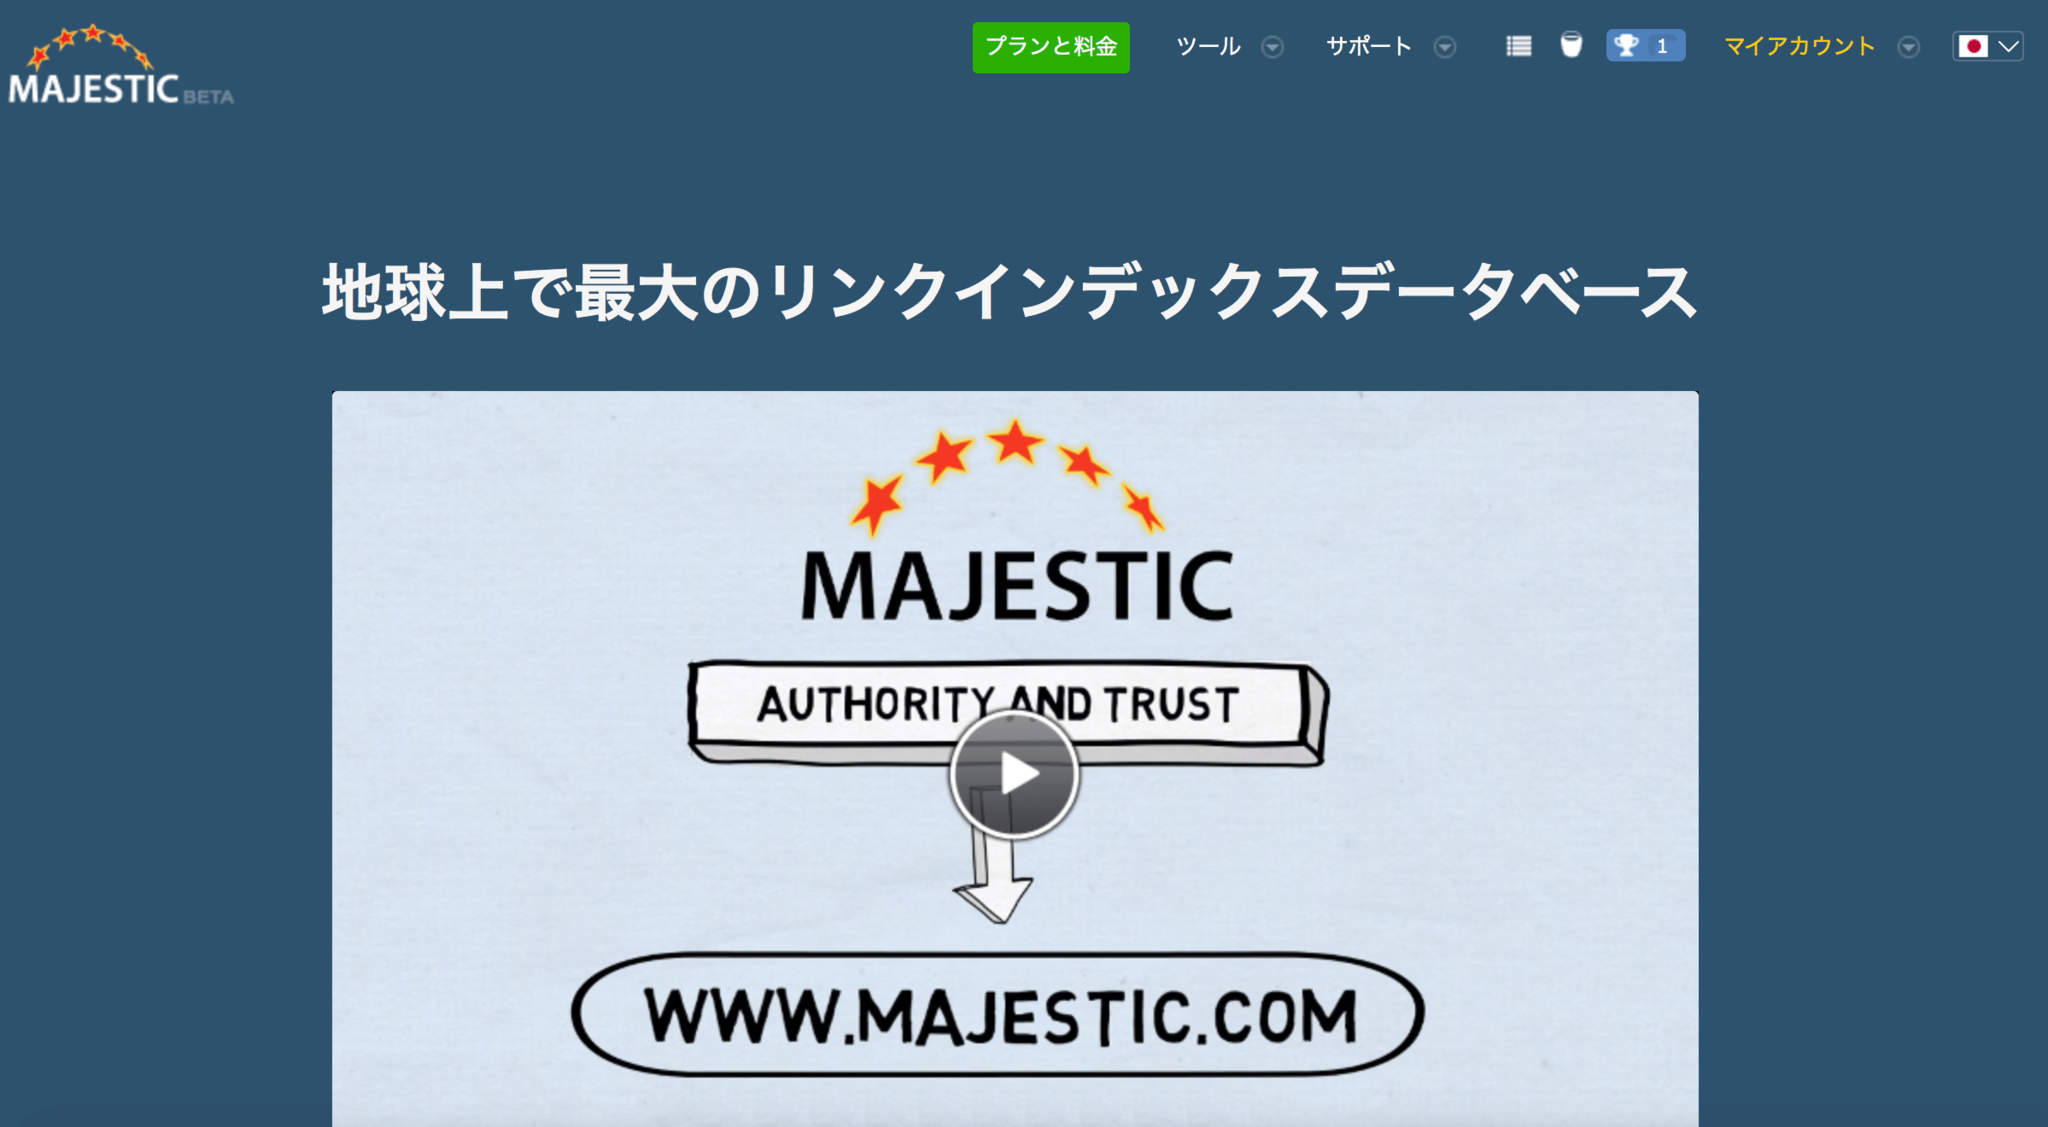 Majestic_top.png